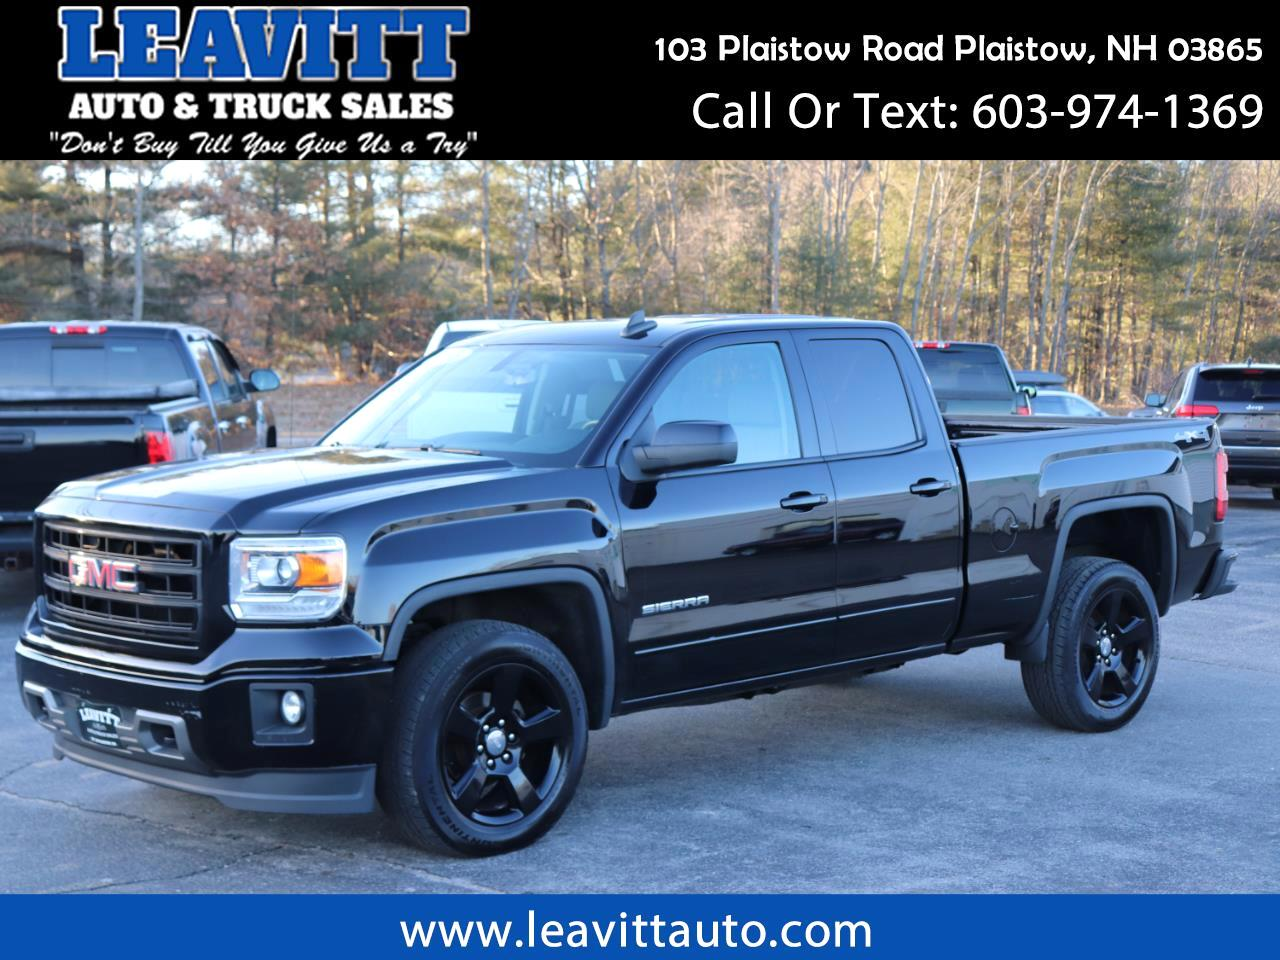 2015 GMC Sierra 1500 ELEVATION DOUBLE CAB